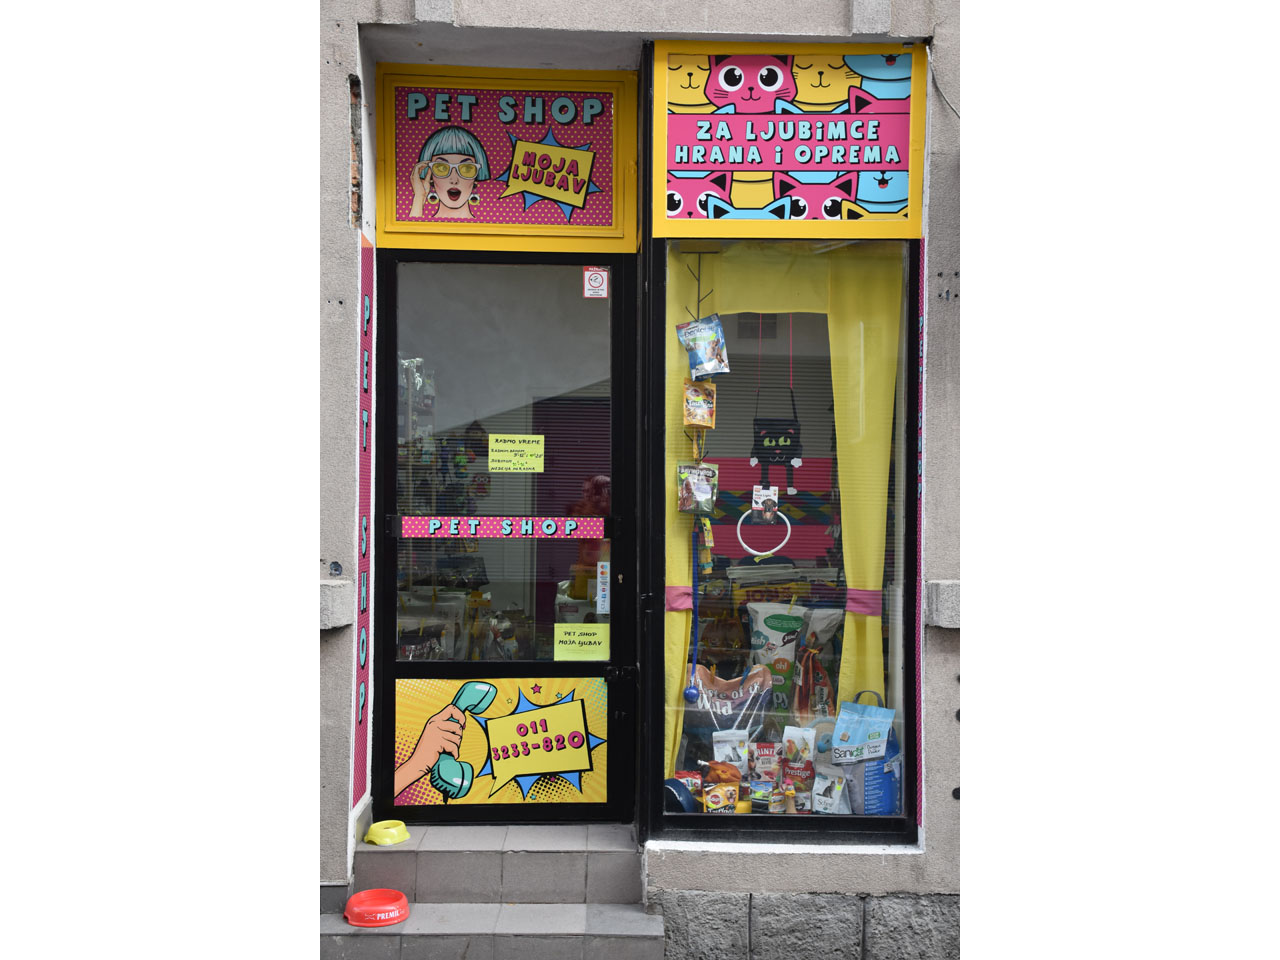 PET SHOP MY LOVE Pets, pet shop Beograd